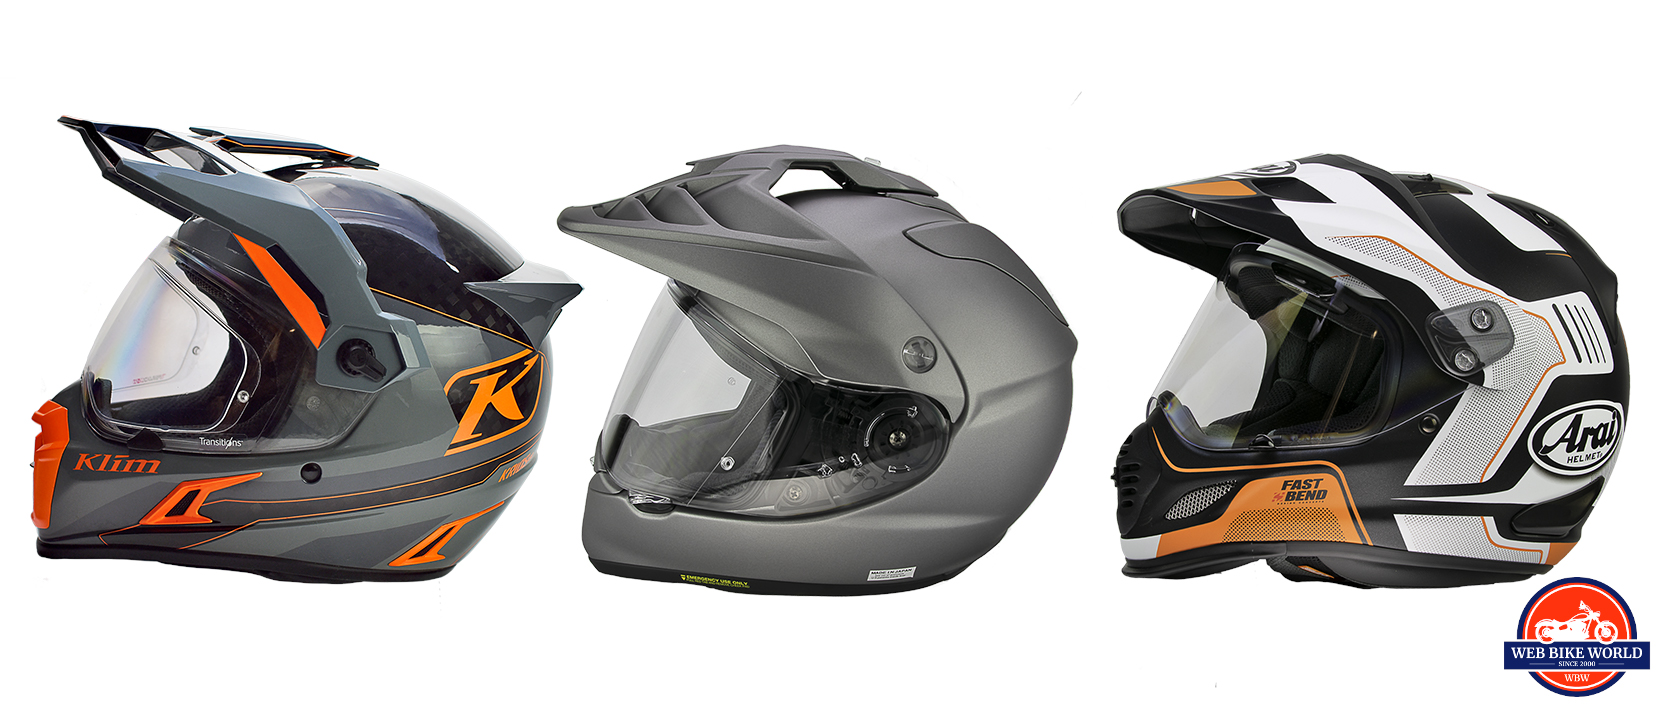 The Klim Krios Pro, Arai XD-4, and Shoei Hornet helmet